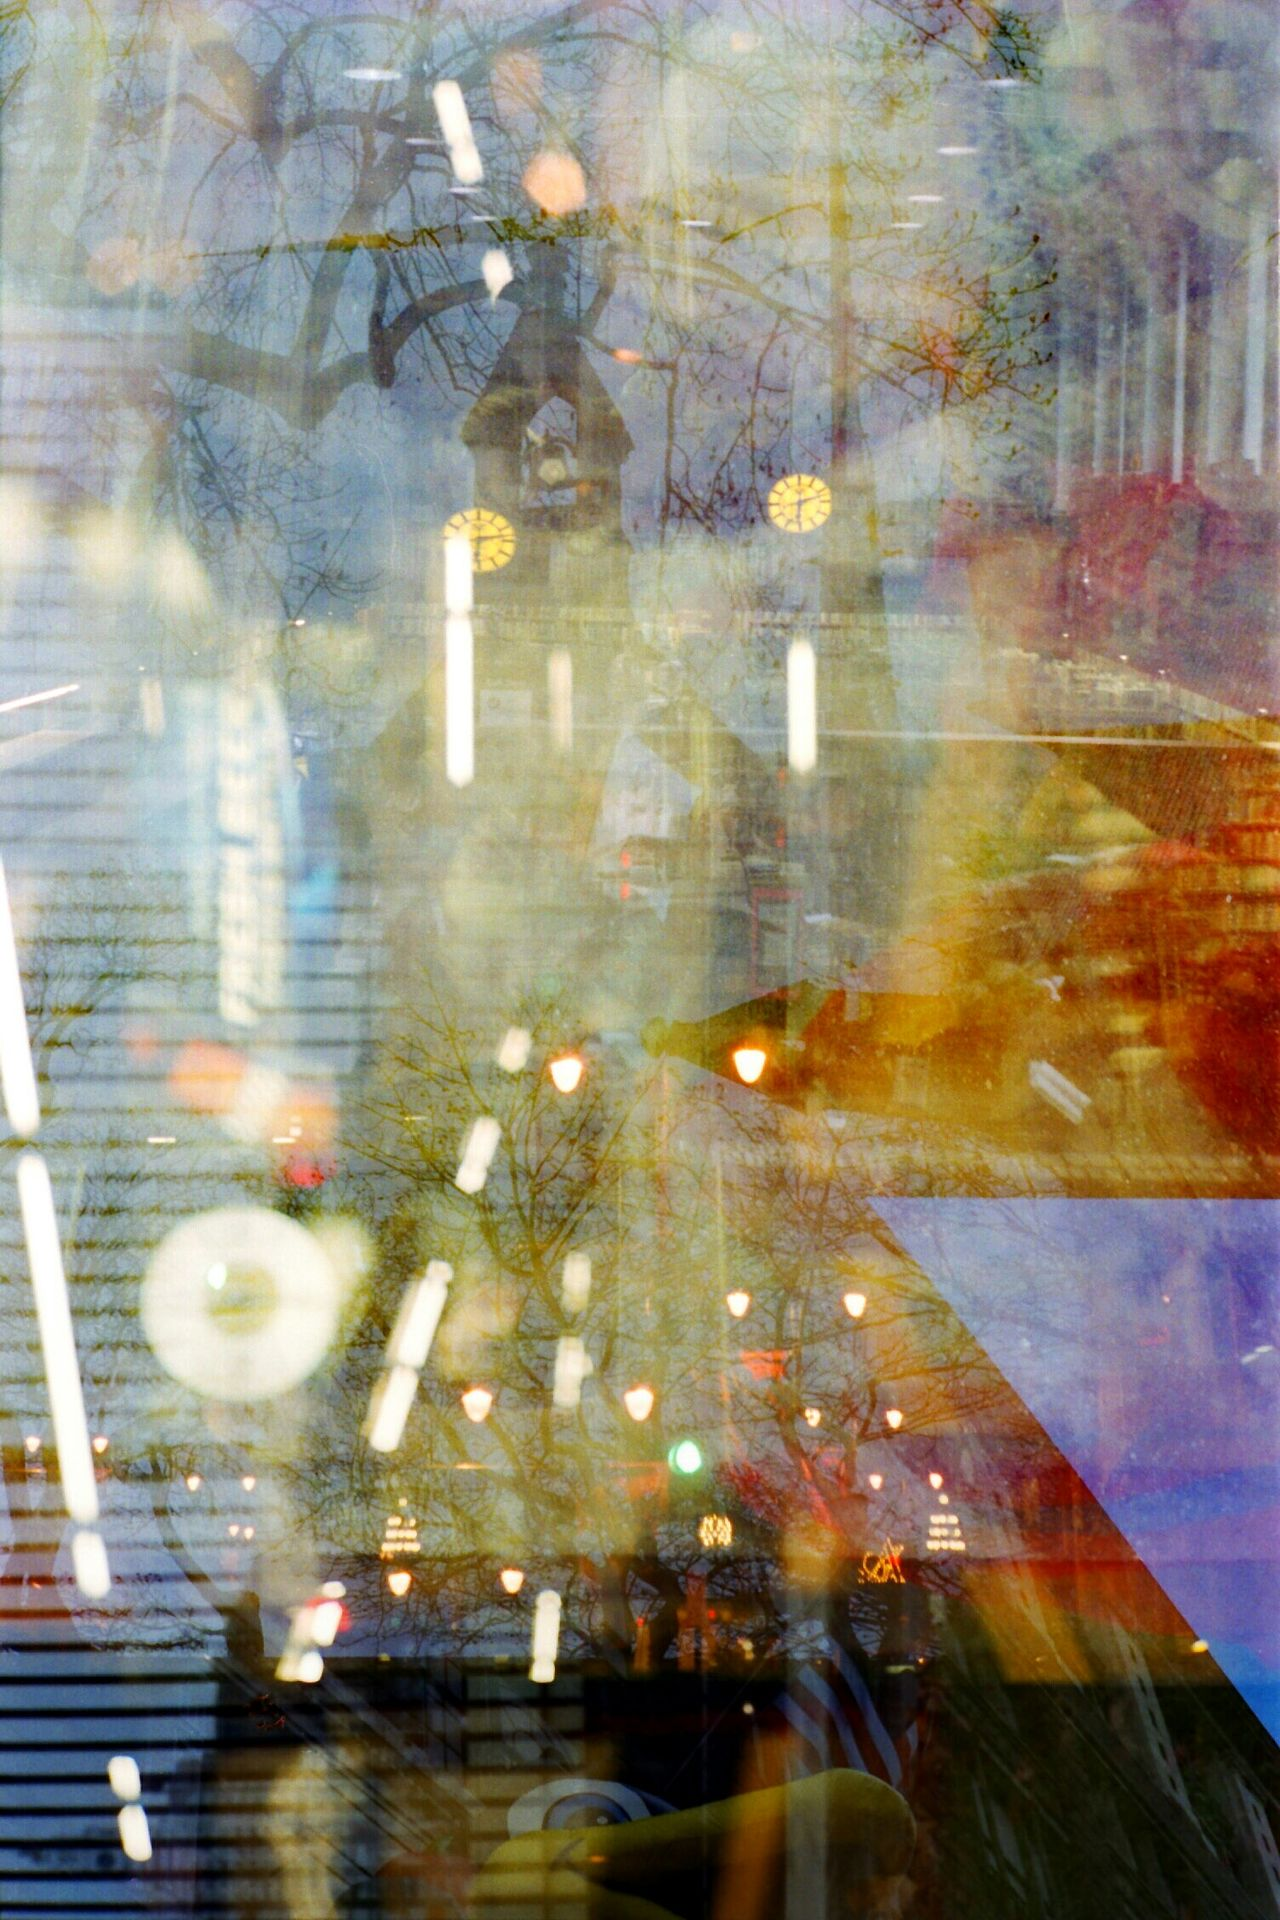 The result of my Canonetql17's failing sprockets. Something like 4 Double Exposure hots in one. Glitch Film Photography 35mm Camera 35mm Film